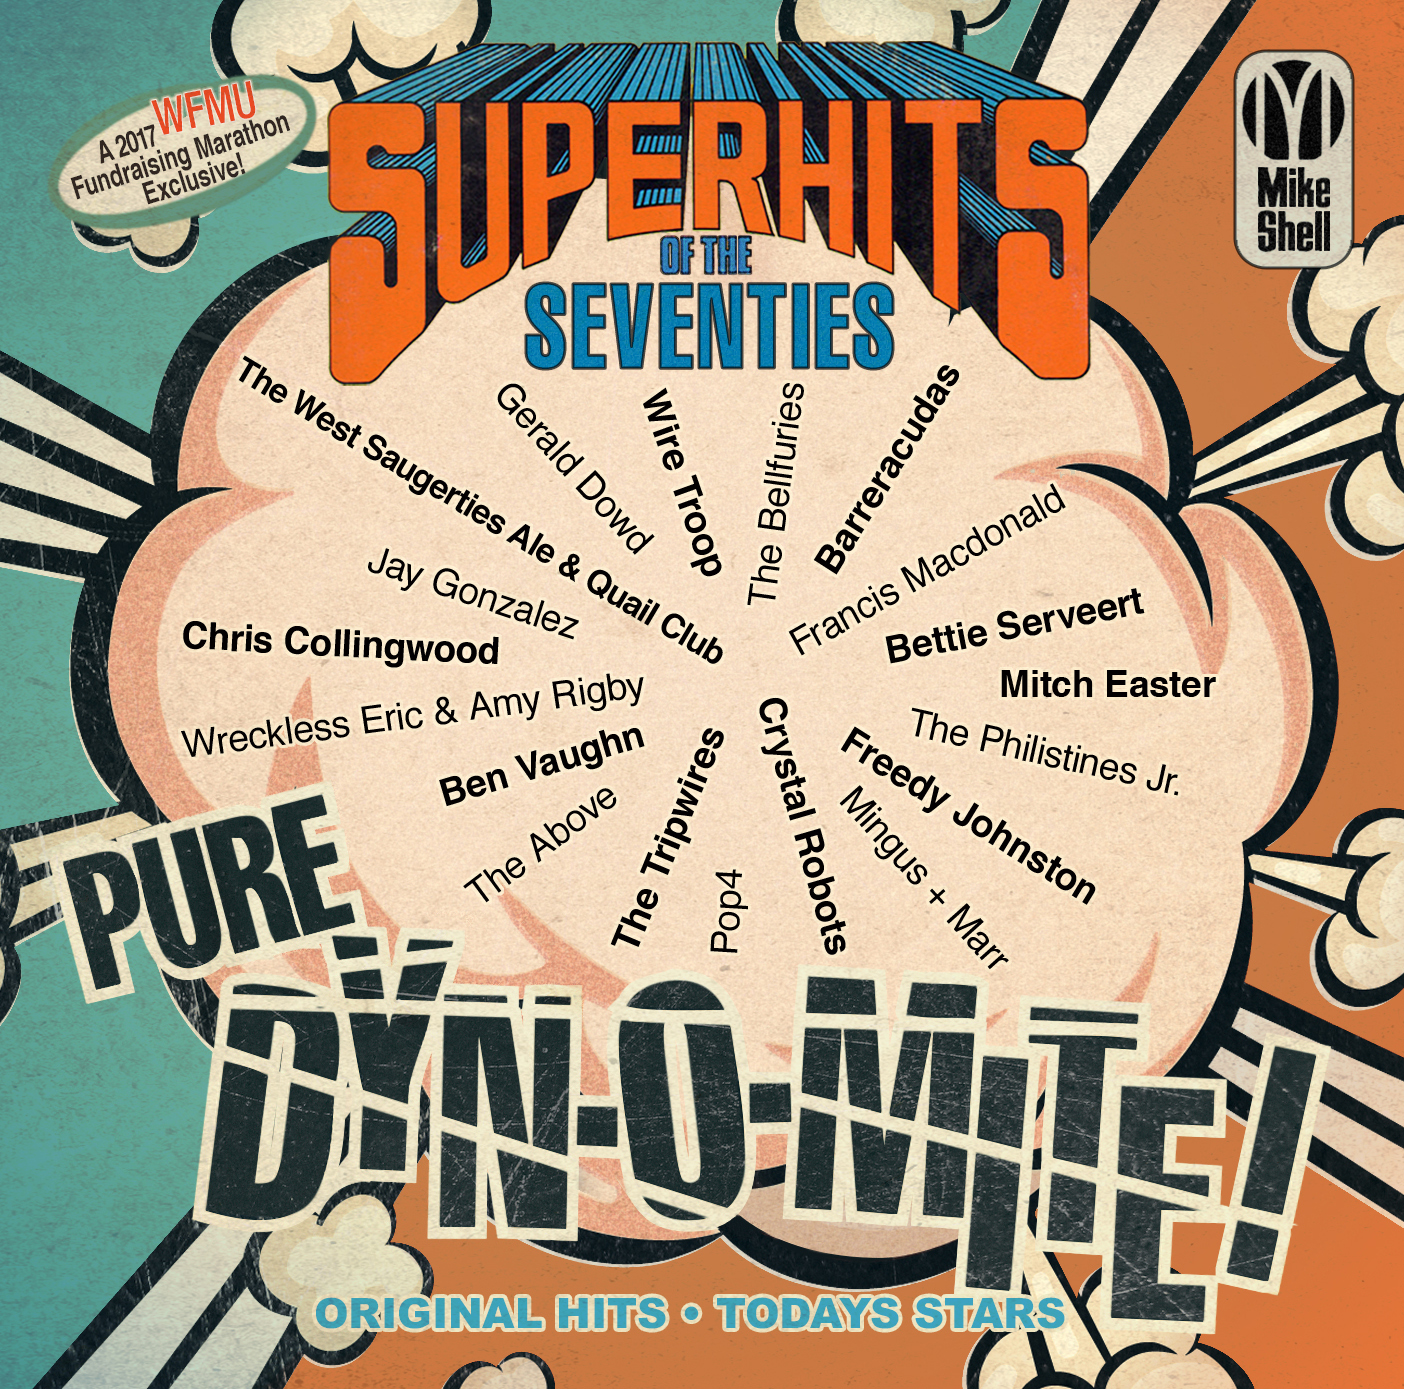 WFMU Super Hits of the Seventies front cover